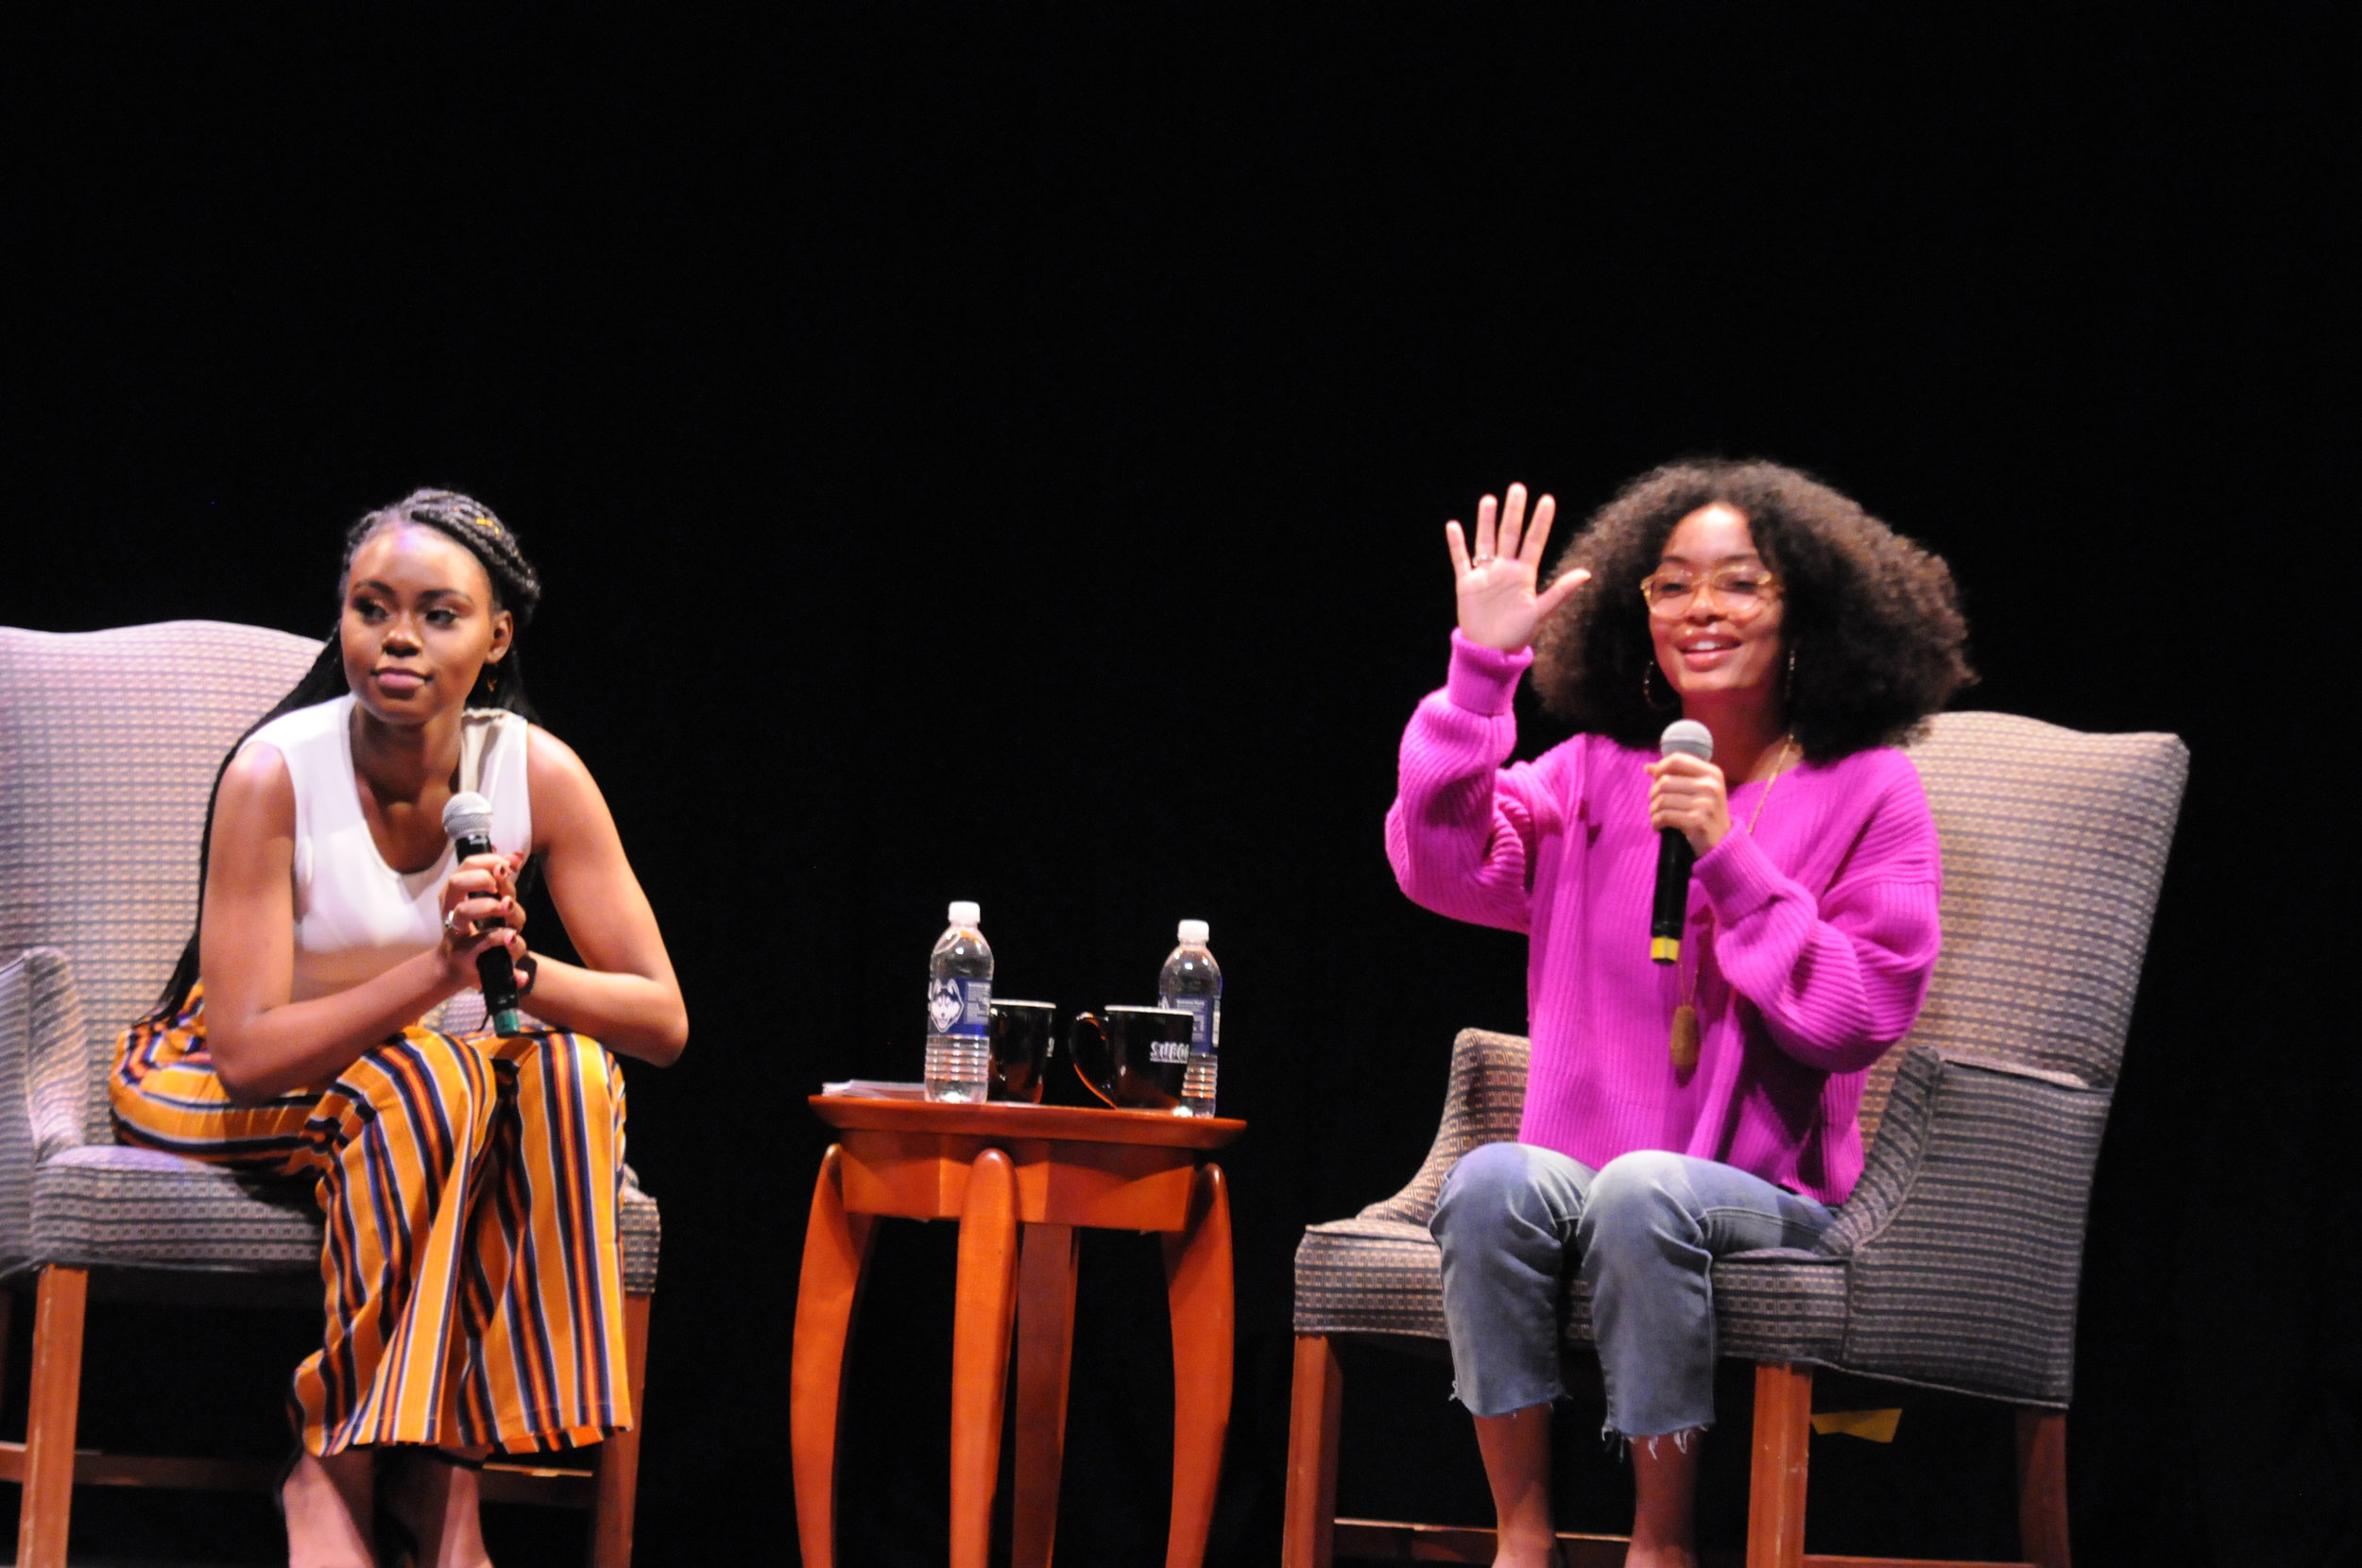 """This year's Metanoia theme was """"Youth for Change,"""" which perfectly represents how UConn students made their voices heard this year. (Hanaisha Lewis/The Daily Campus)"""